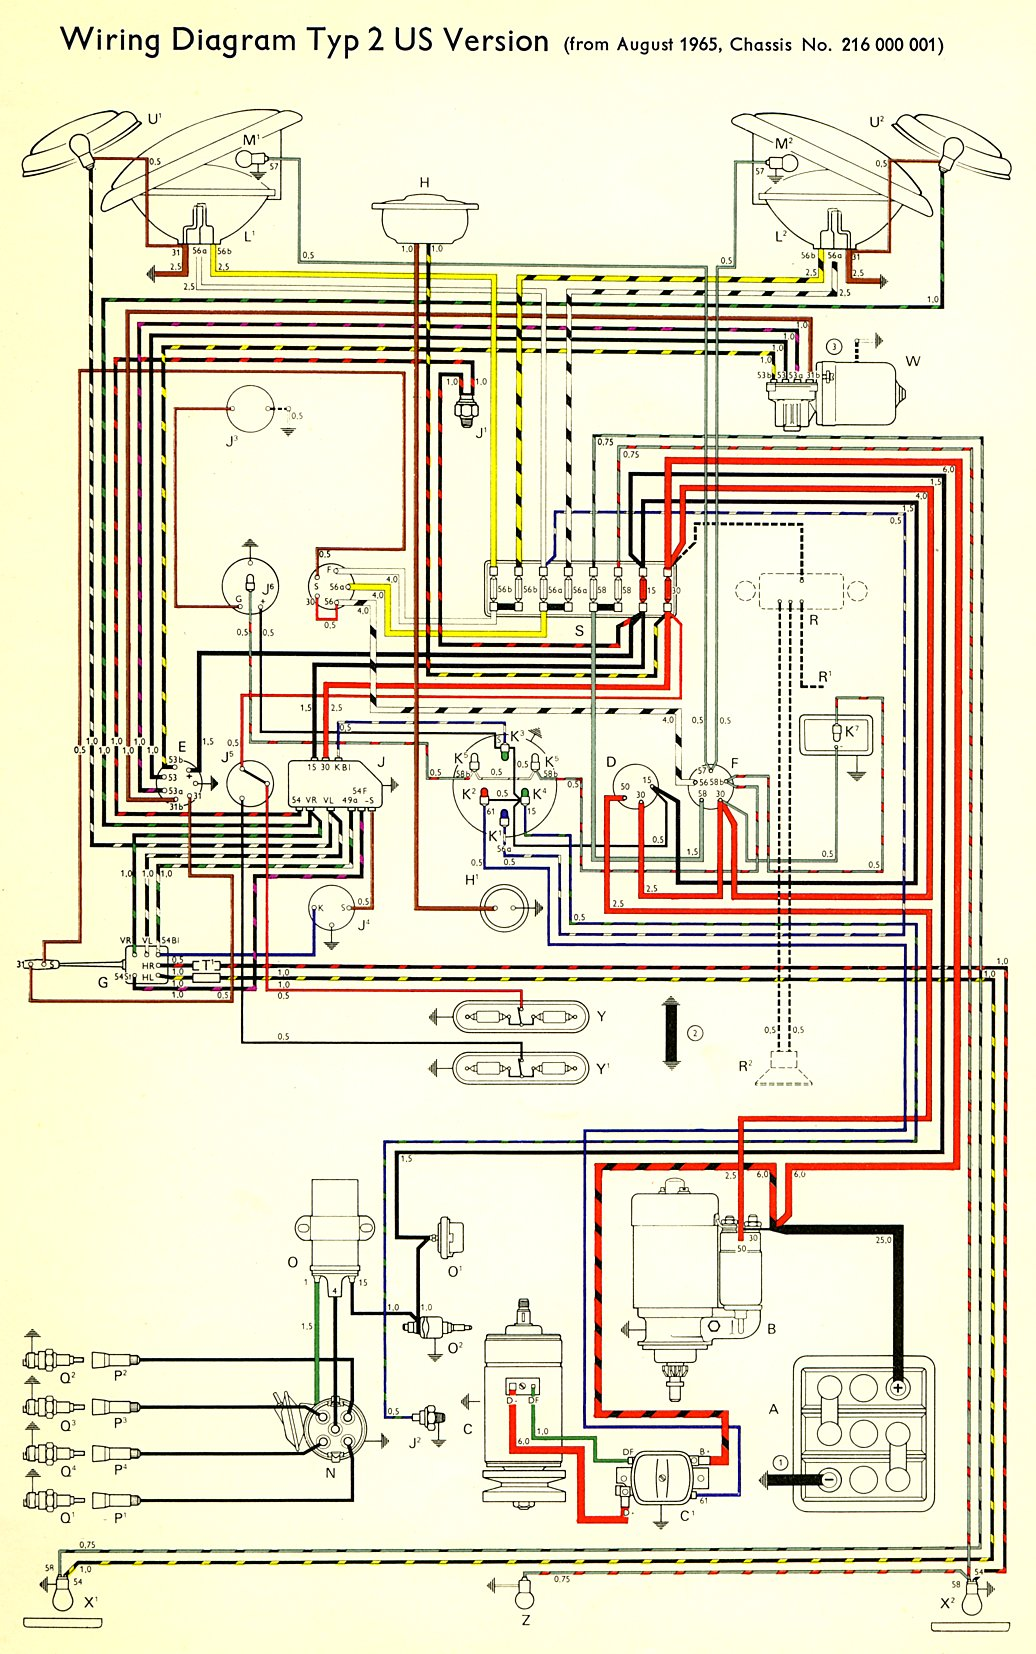 bus_66_USA 1966 bus wiring diagram (usa) thegoldenbug com vw wiring diagrams at pacquiaovsvargaslive.co